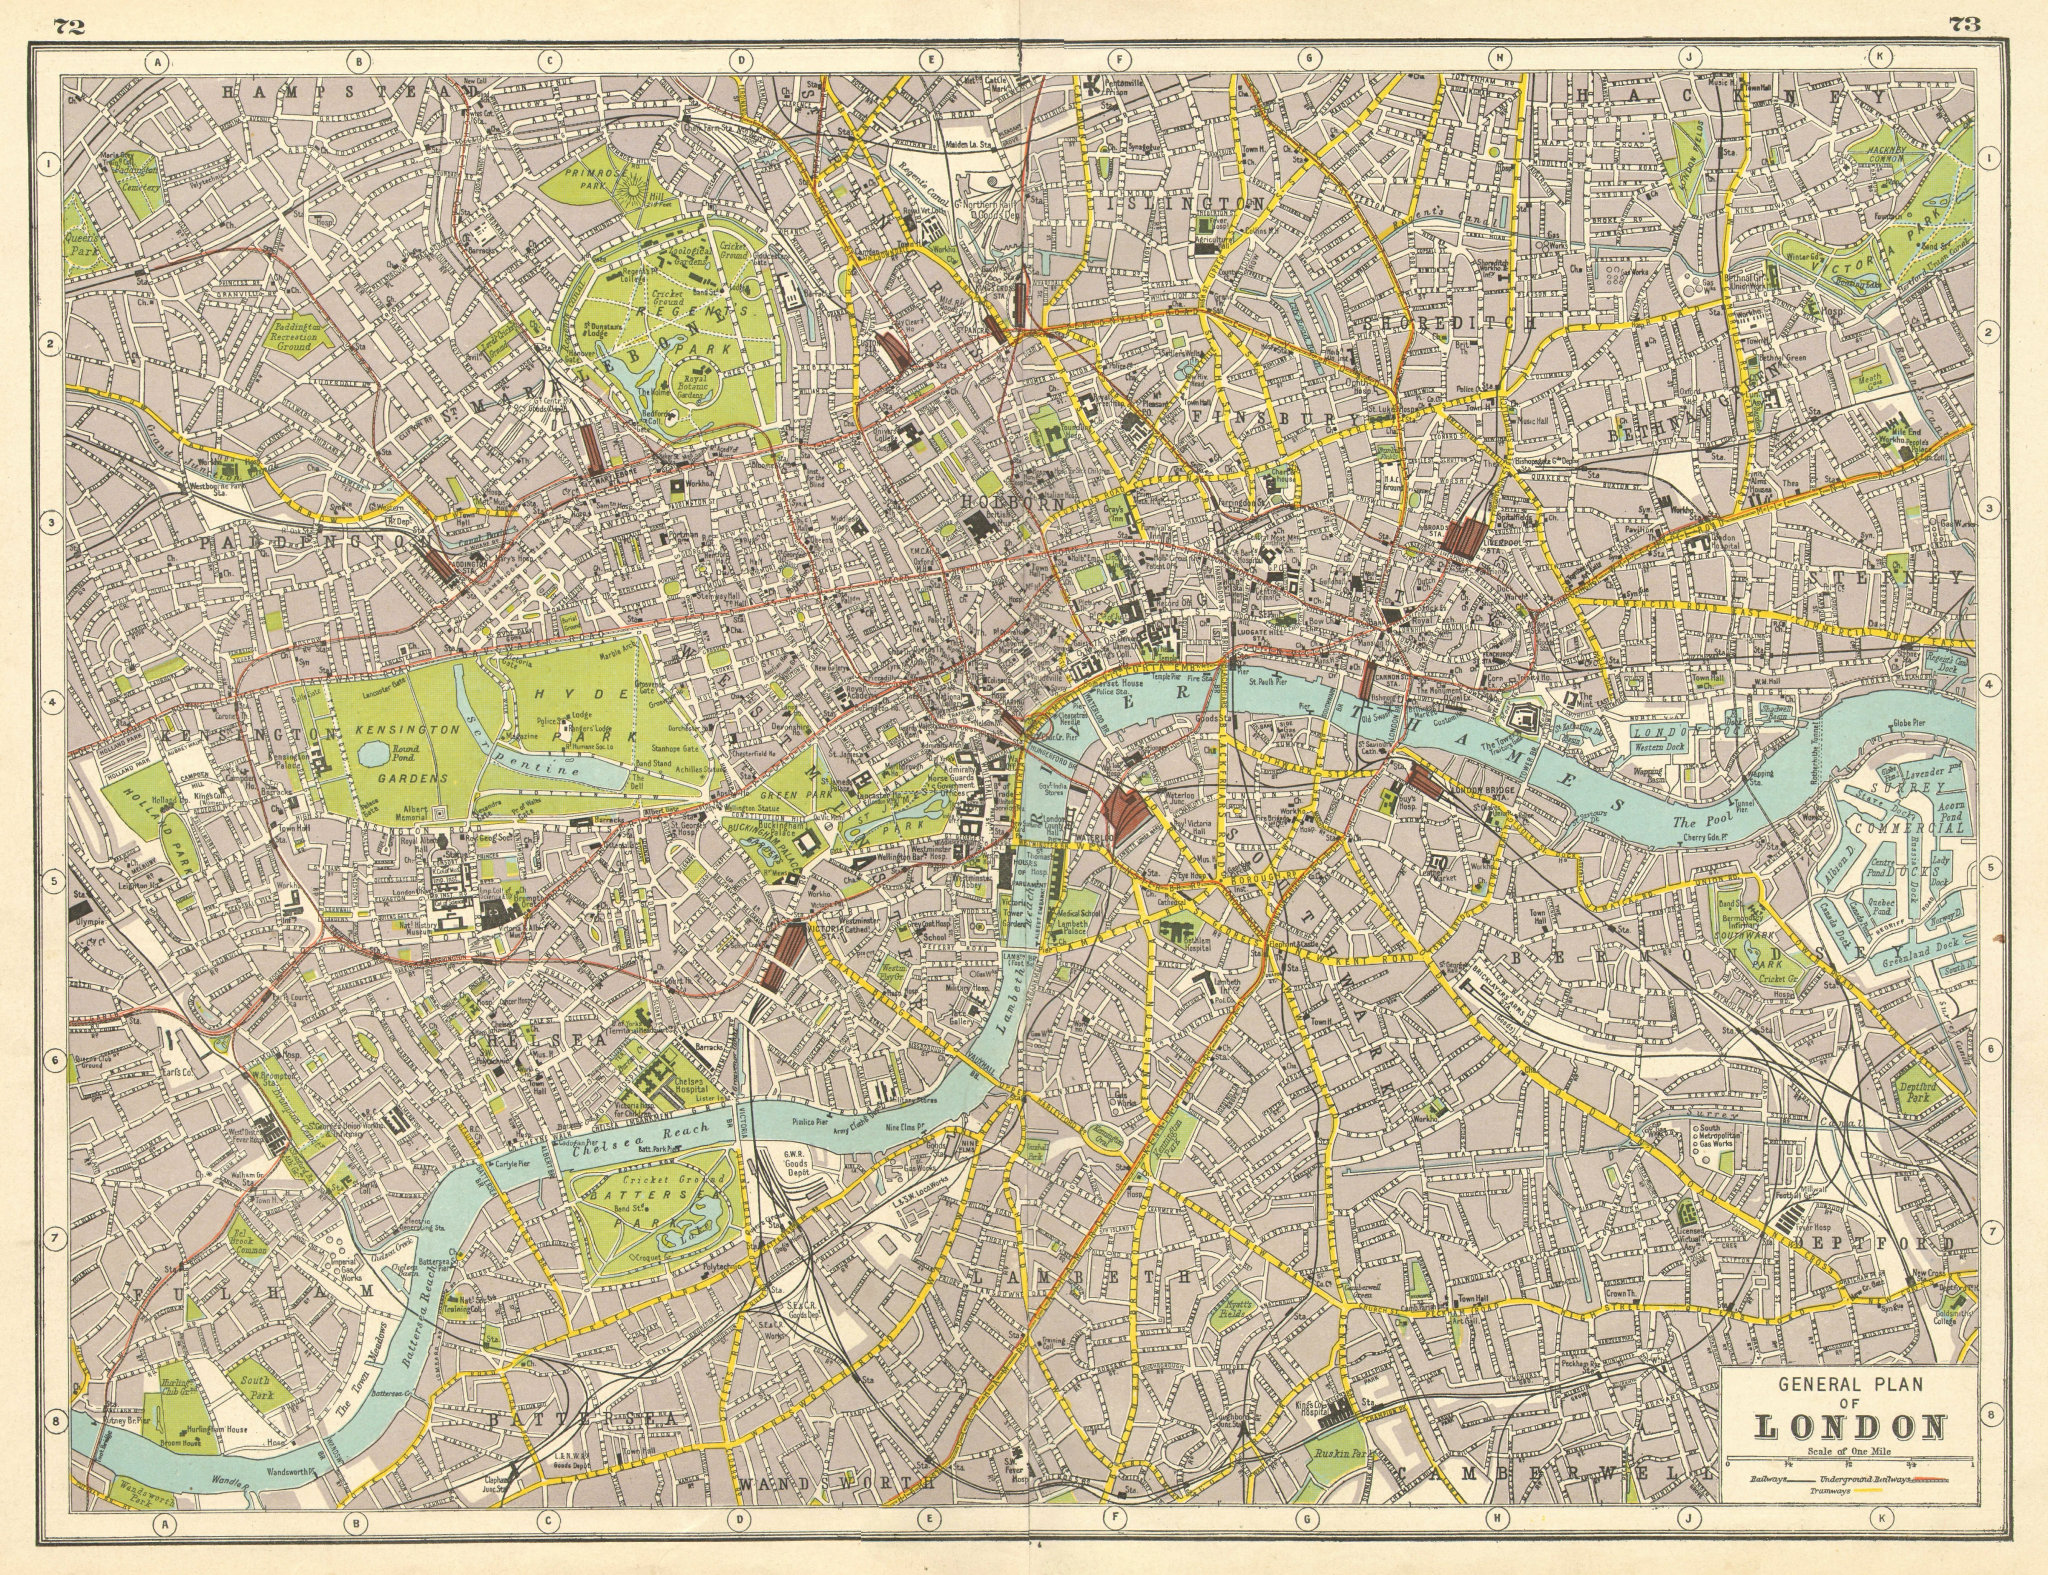 Associate Product LONDON. Central London plan. HARMSWORTH 1920 old antique map chart